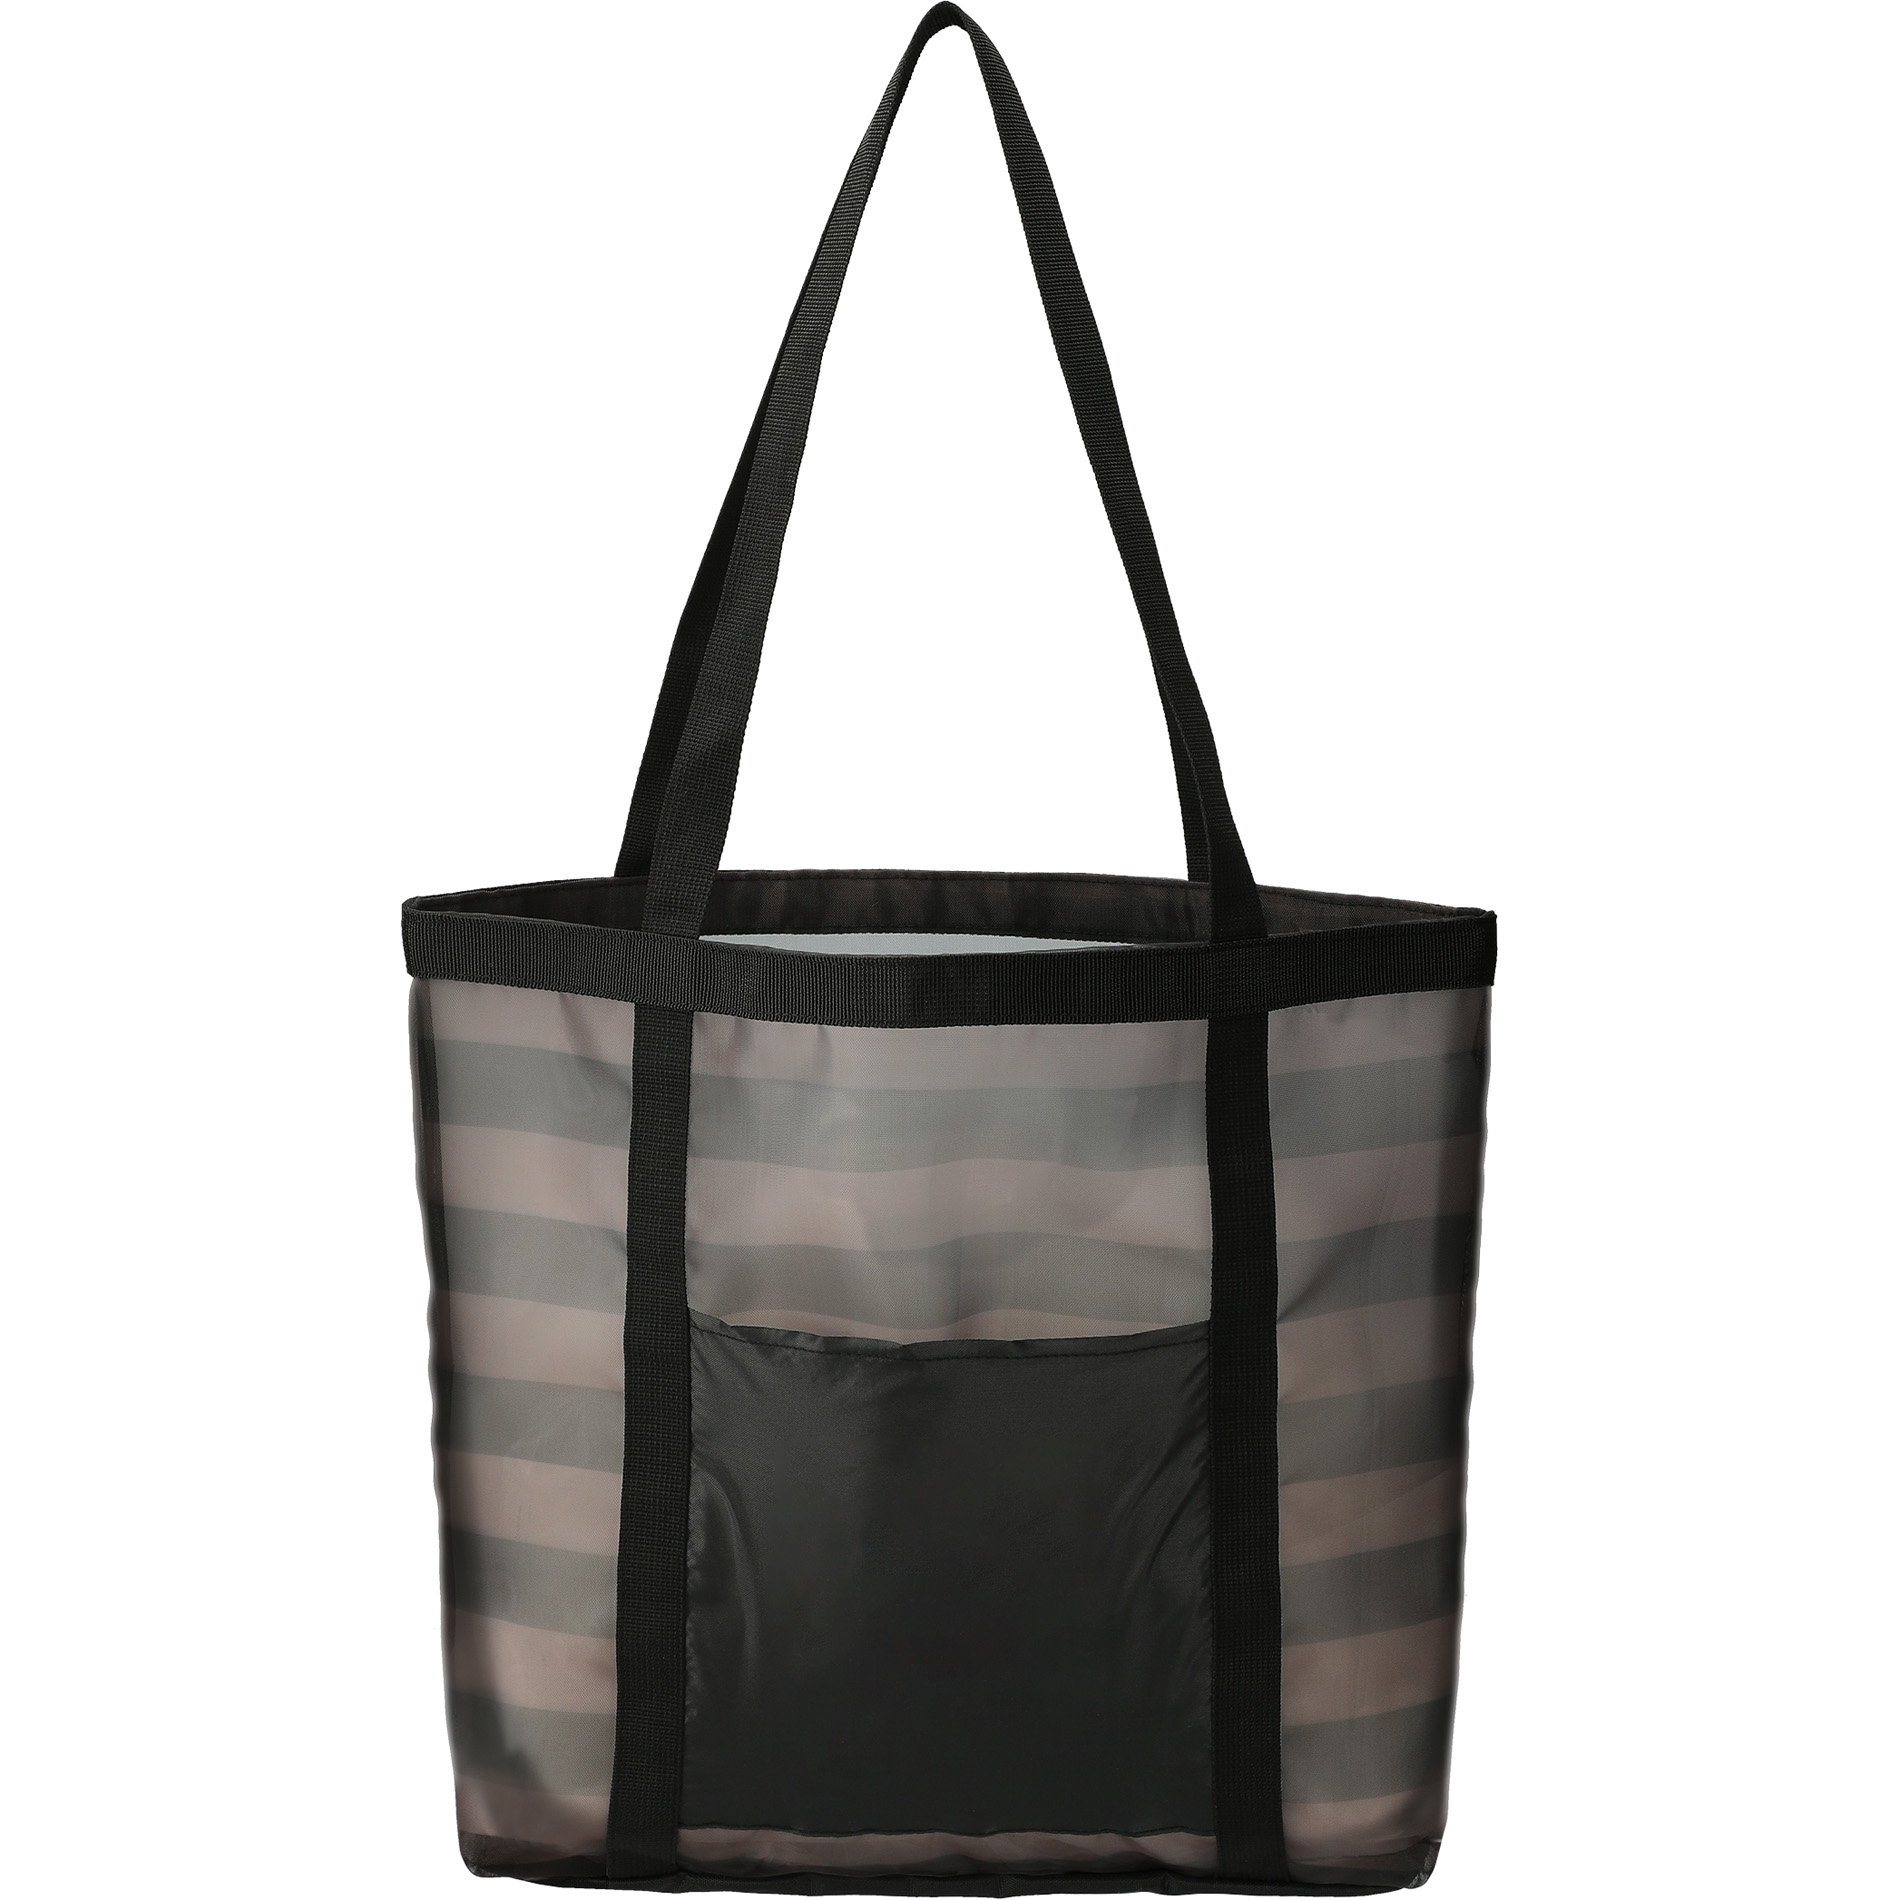 LEEDS 2160-73 - Two-Tone Mesh Shopper Tote